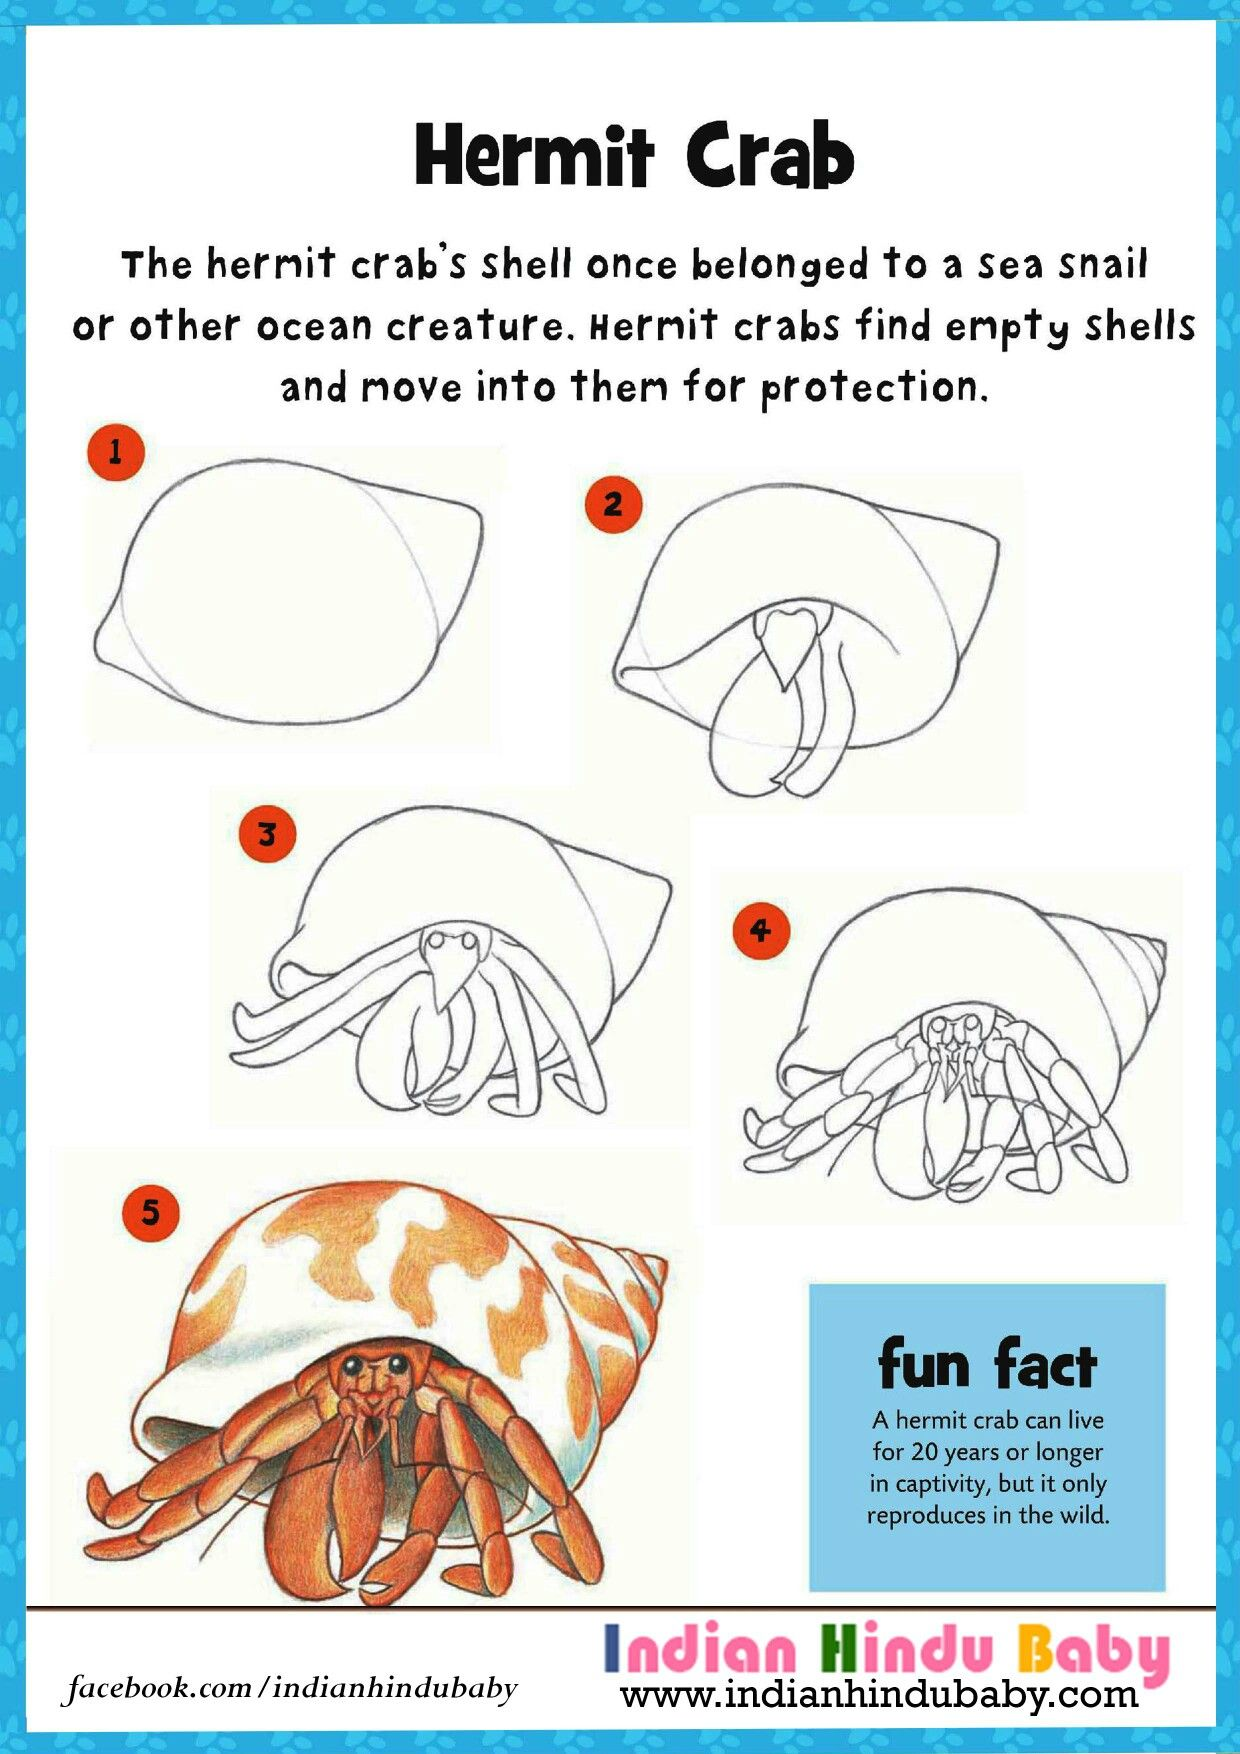 Hermit Crabs Facts For Kids